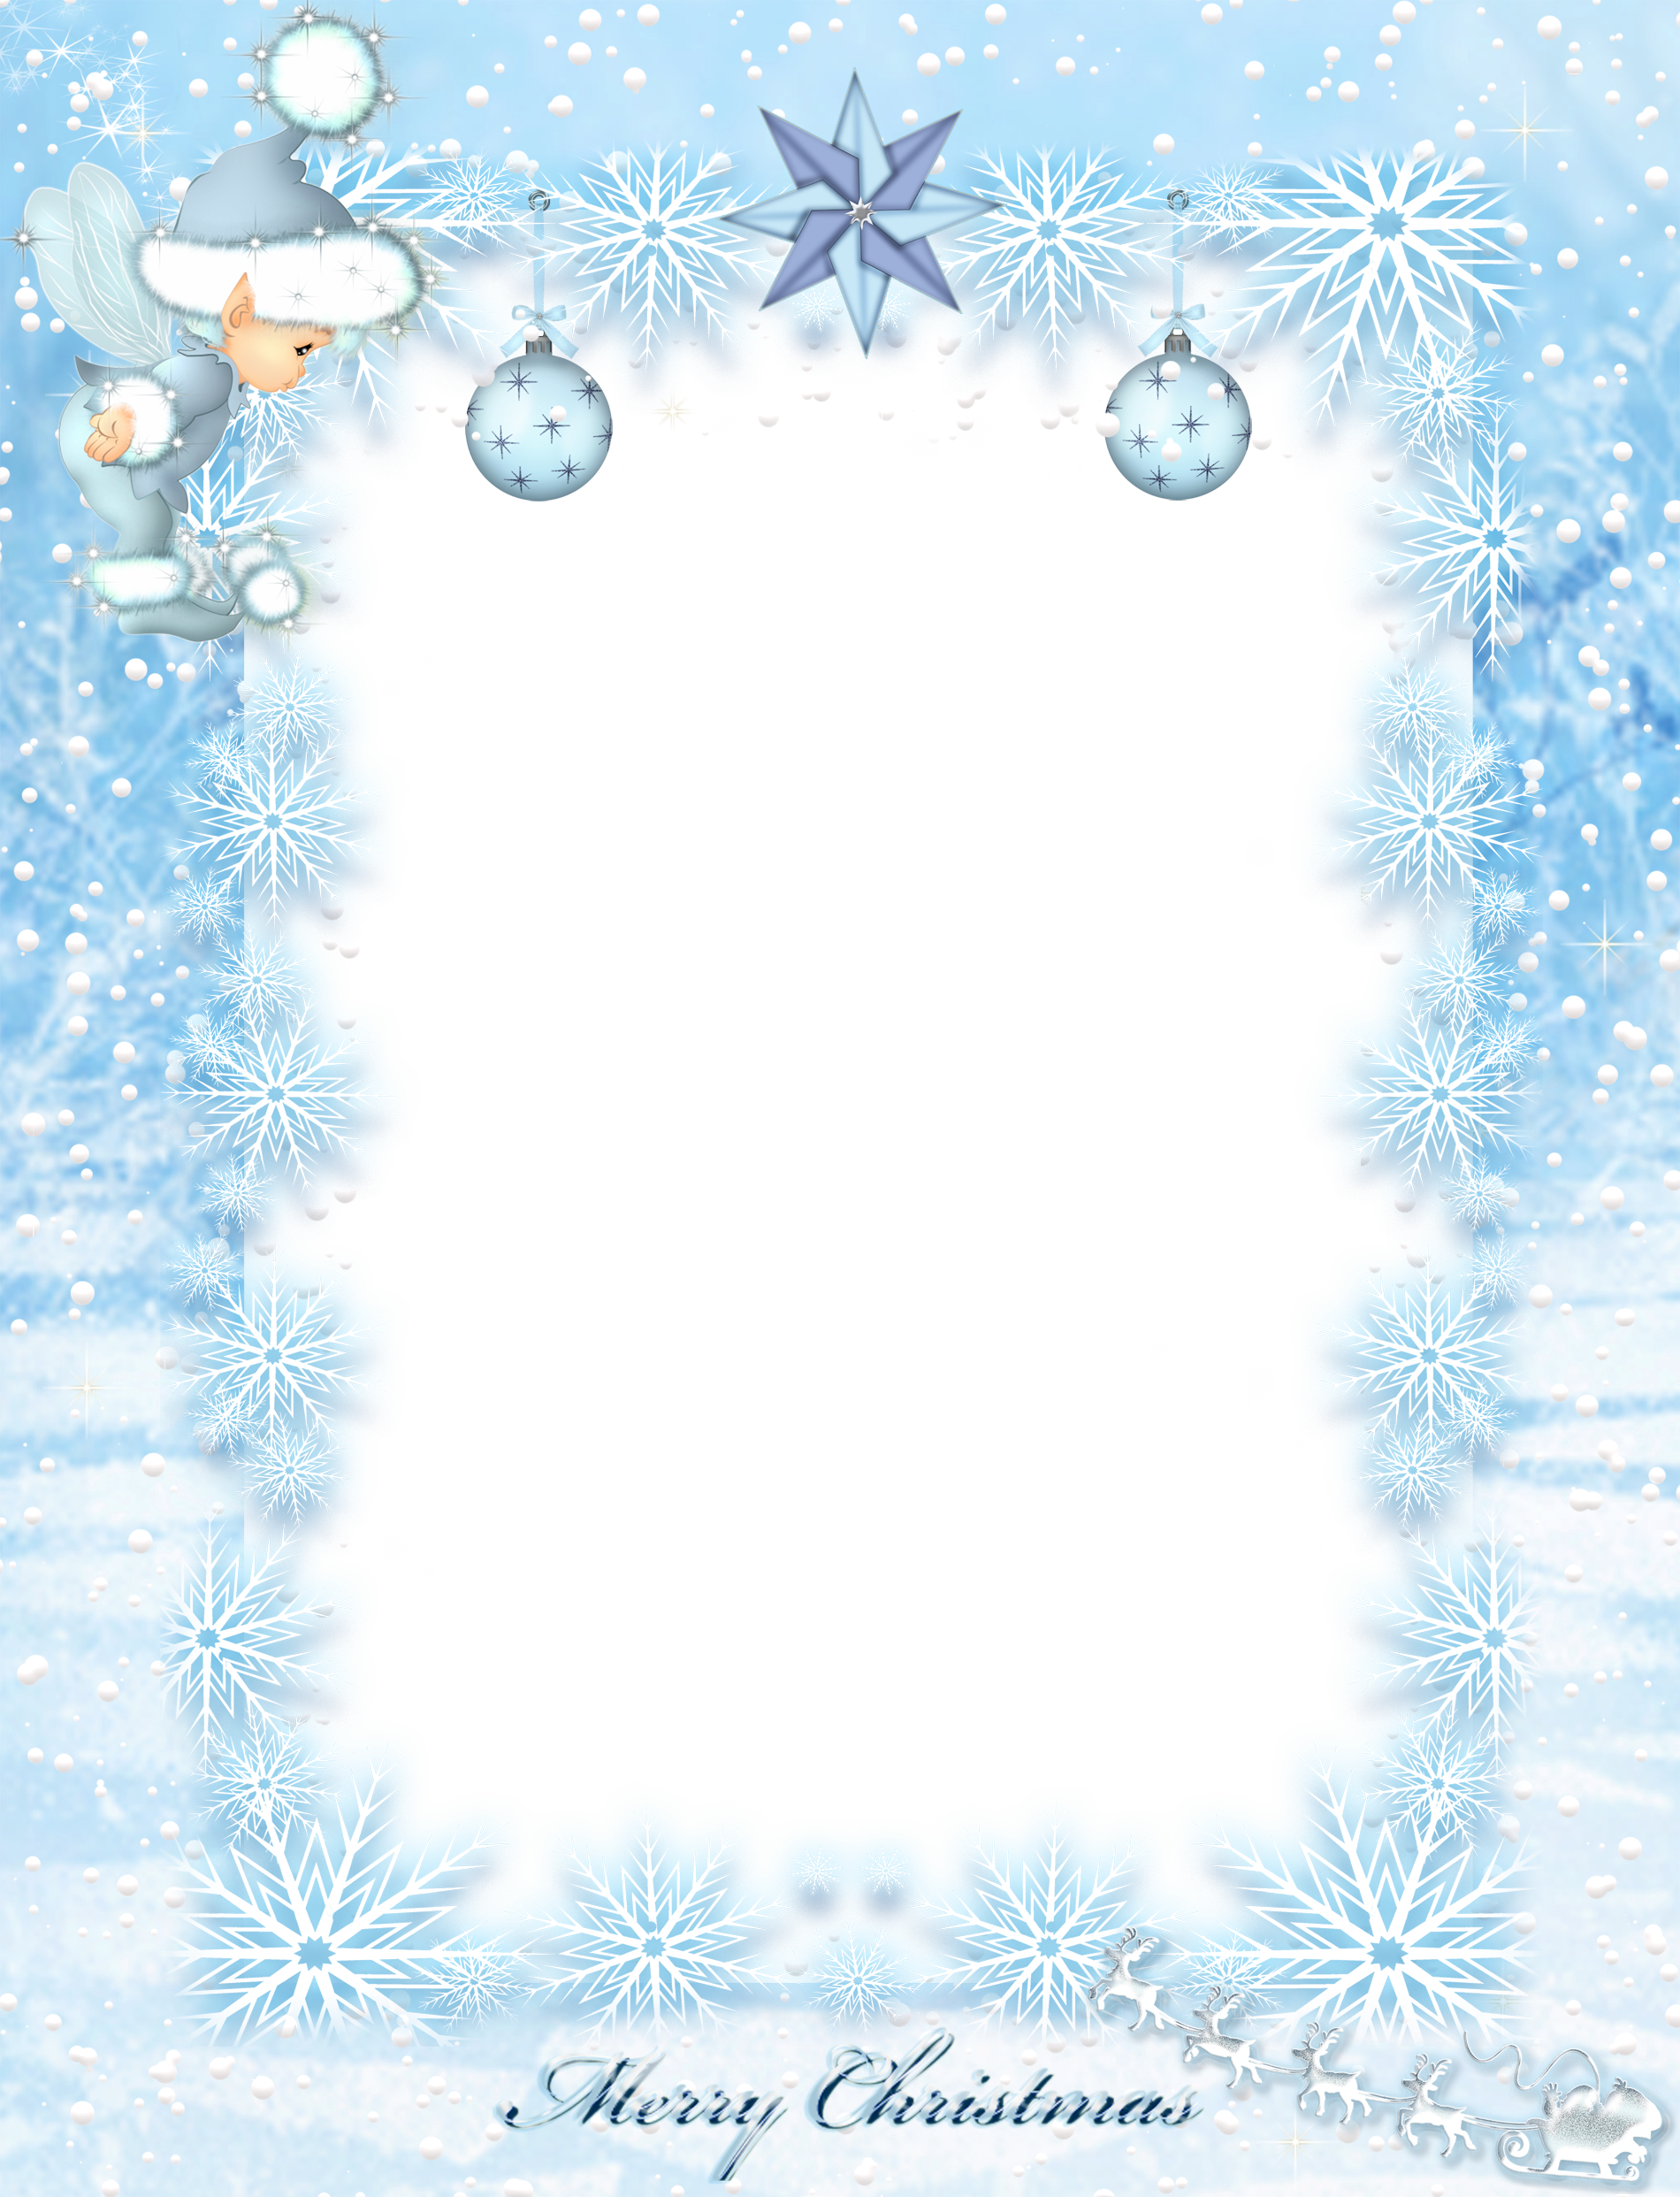 Silver snowflake clipart kids png library Transparent Kids Christmas Ice Elf PNG Photo Frame | Raamistik ... png library